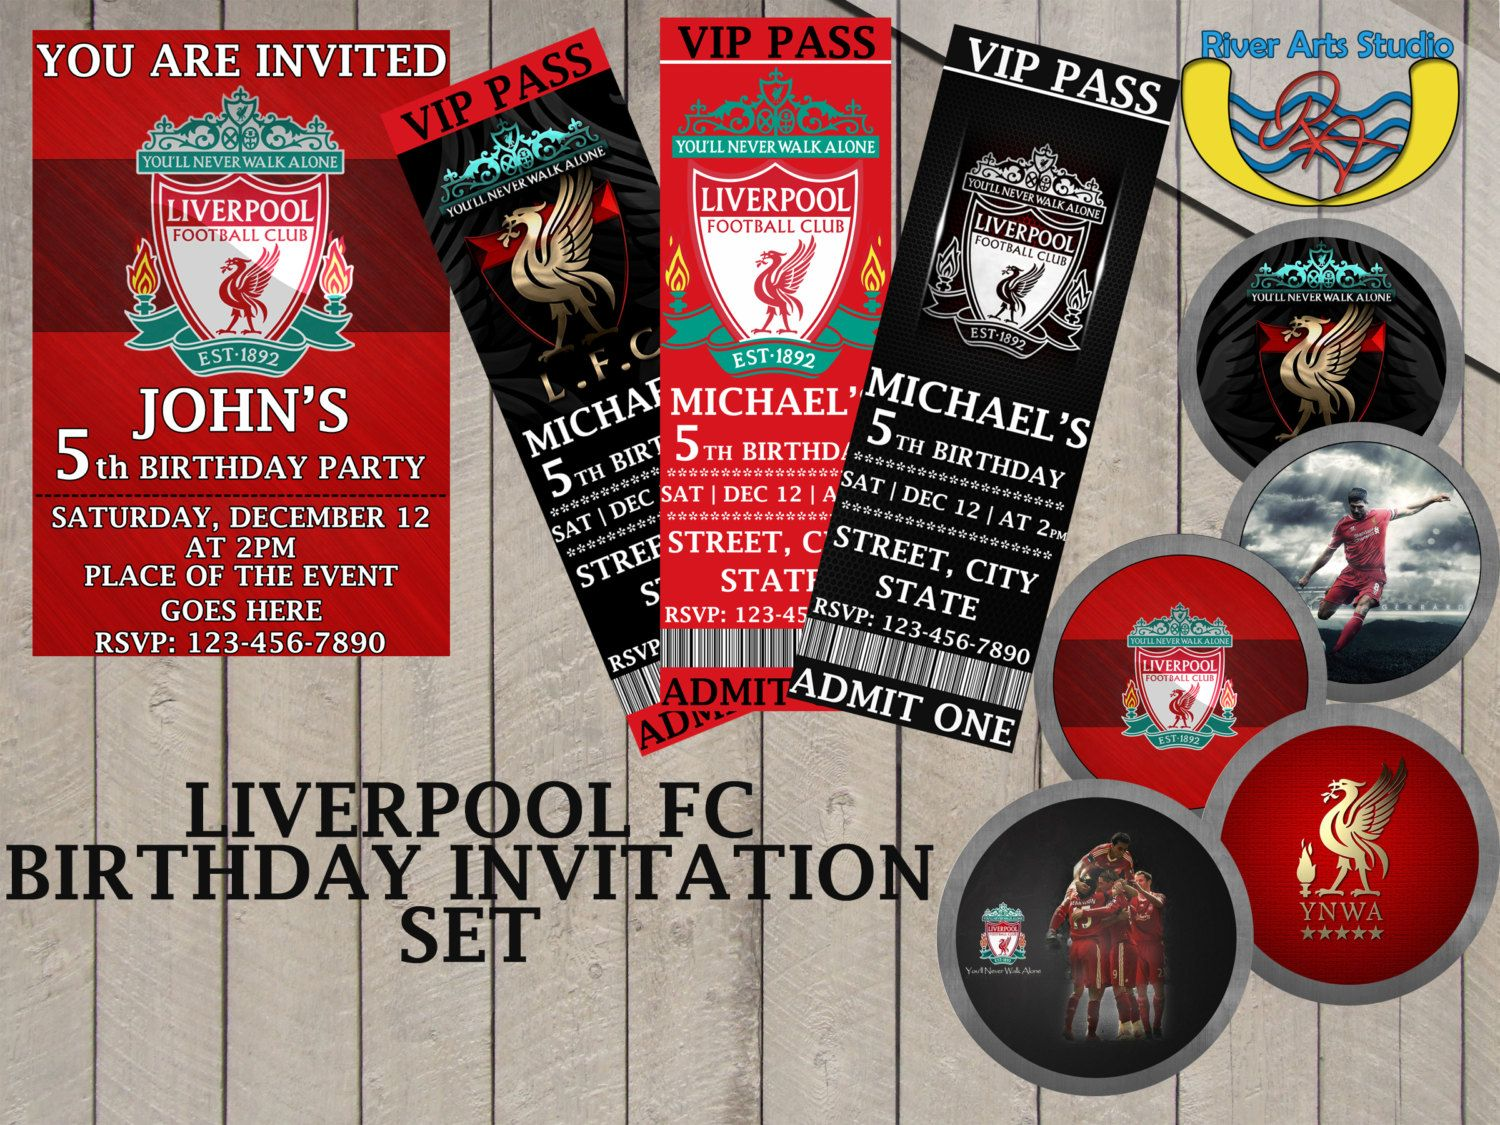 Wedding Invitations Liverpool: GET ALL DESIGNS -Liverpool Fc Set Birthday Invitation